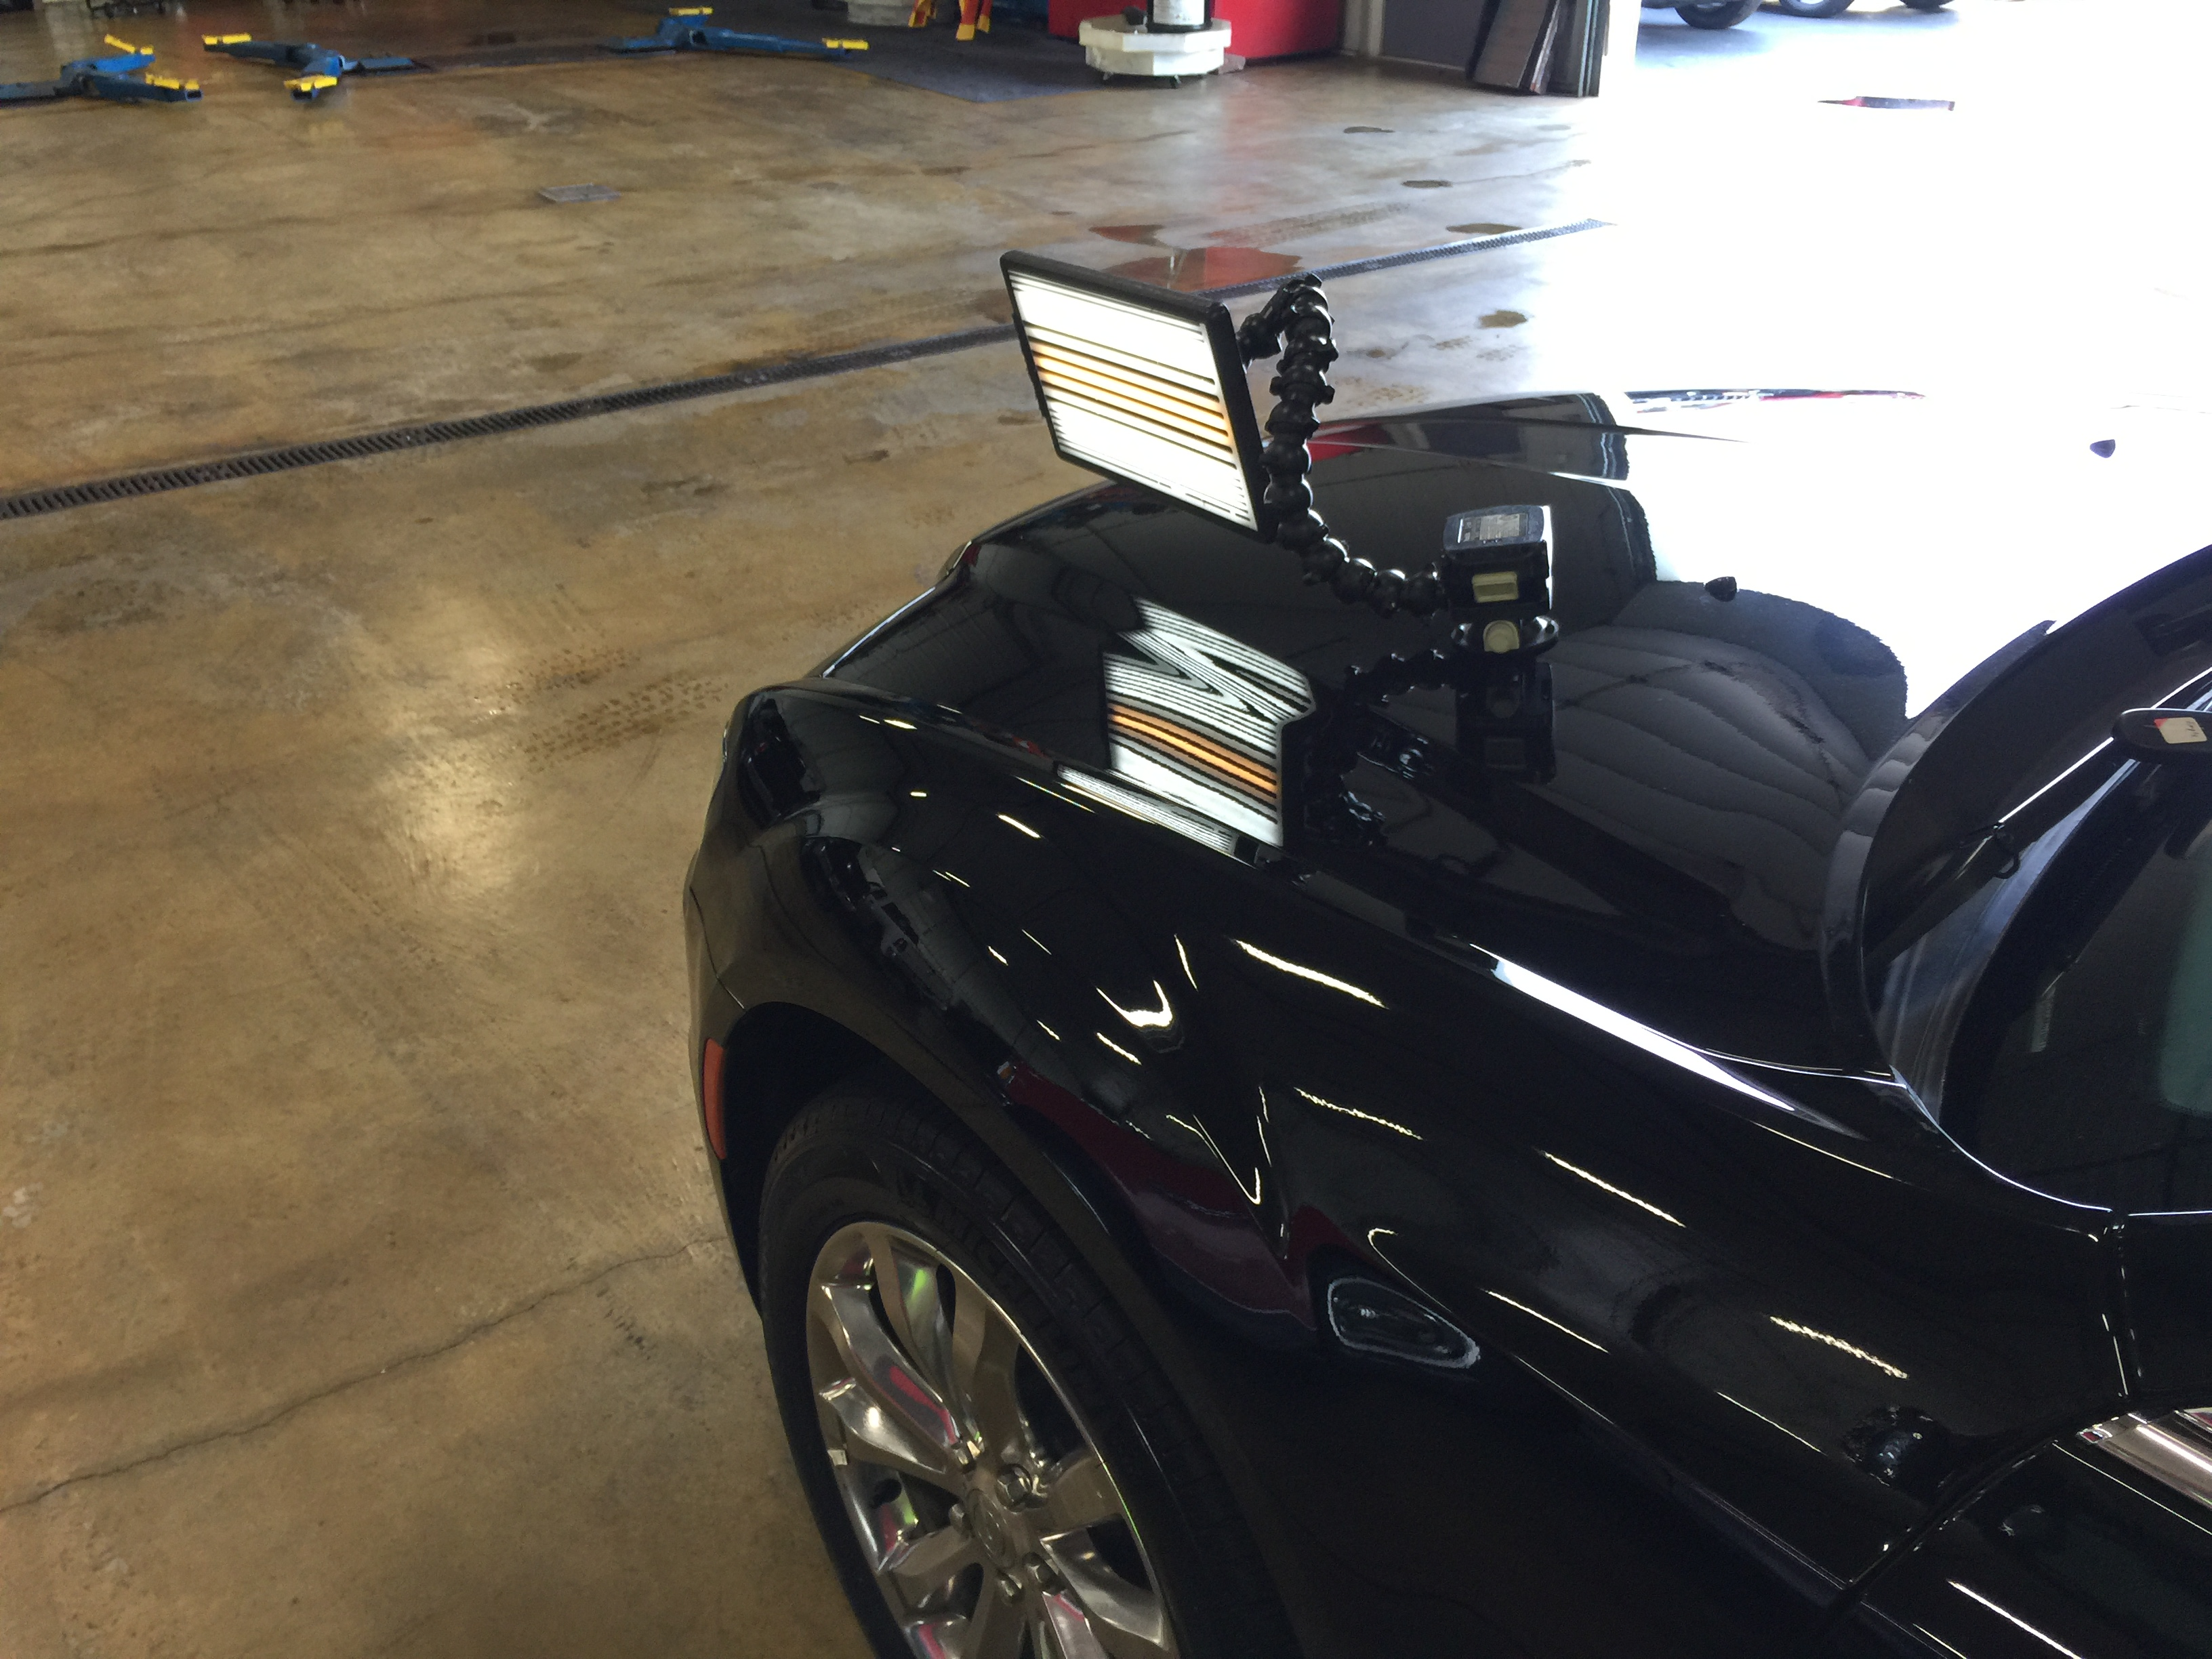 2016 Chrysler 300 C AWD Dent Repair on Aluminum Hood, hail damage, Springfield, IL. PDR http://217dent.com